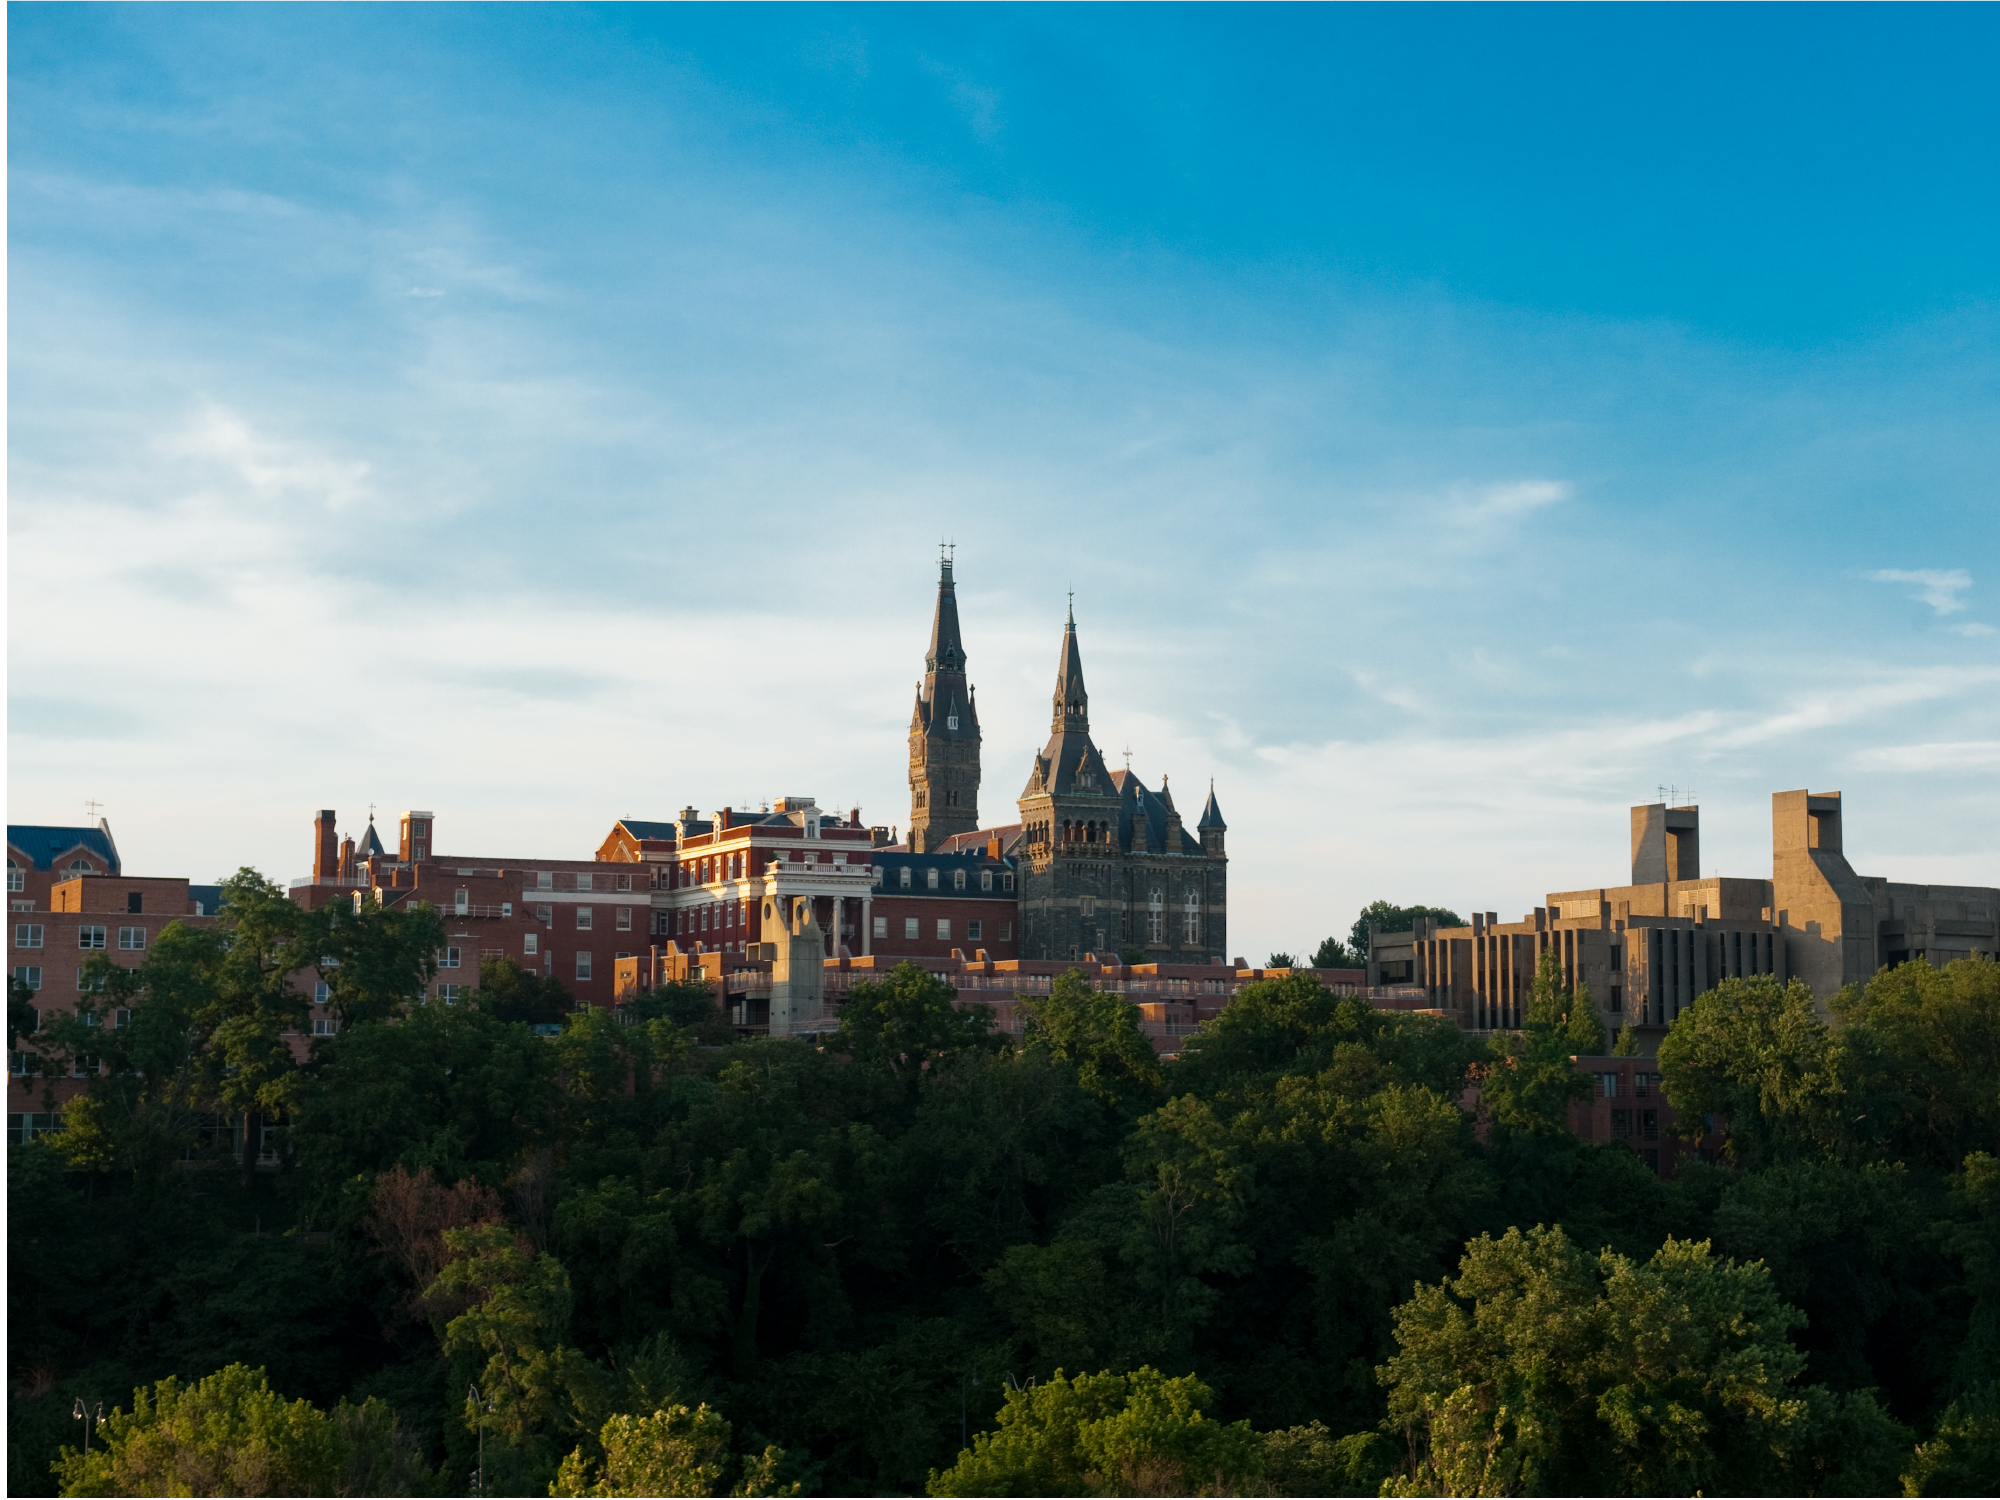 Drone image of Georgetown University main campus